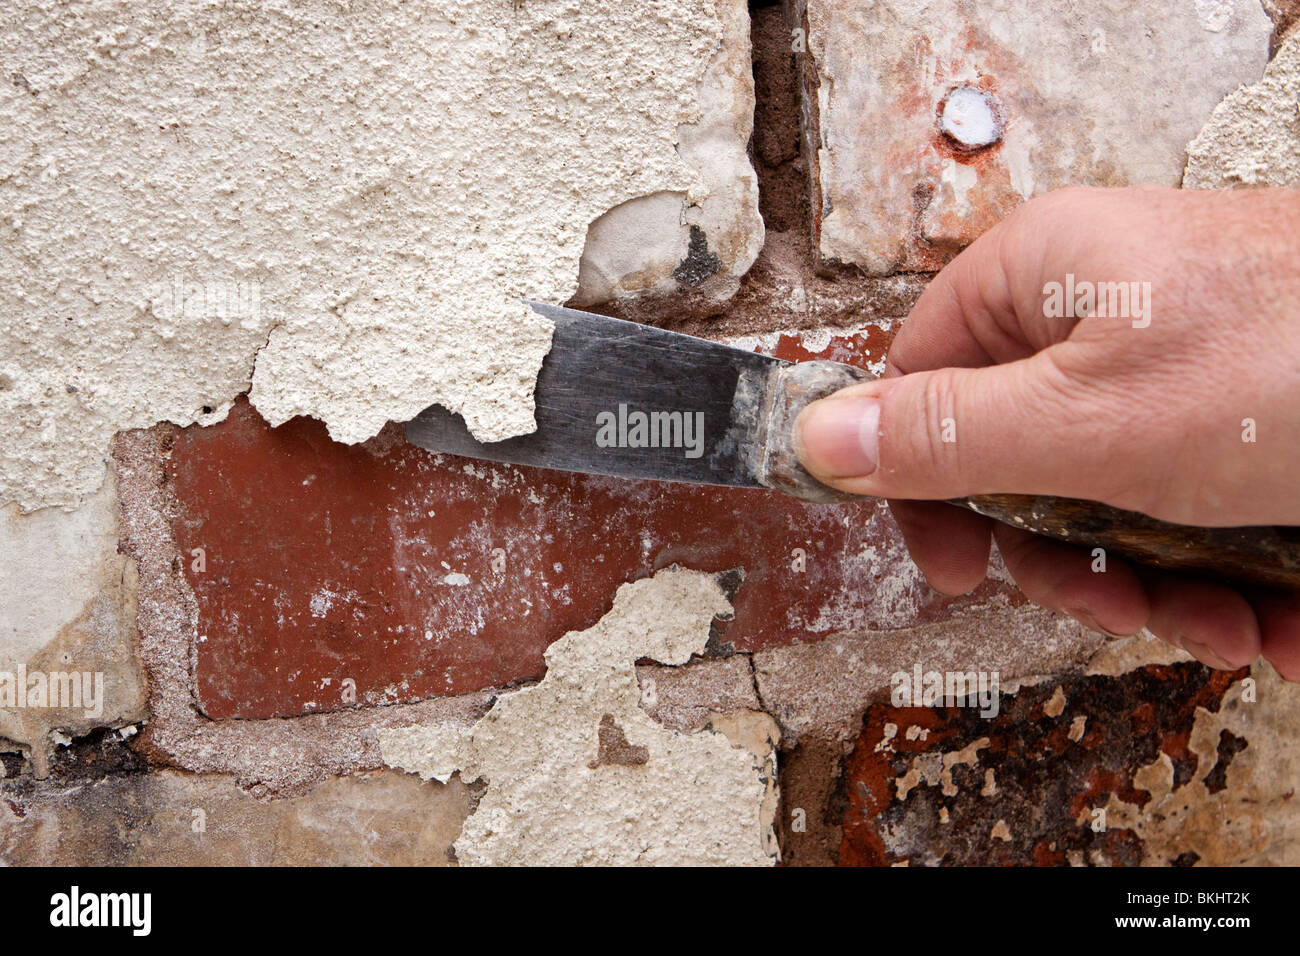 House Maintenance Man Scraping Off Flaking Paint On Old Brickwork In Stock Photo Alamy